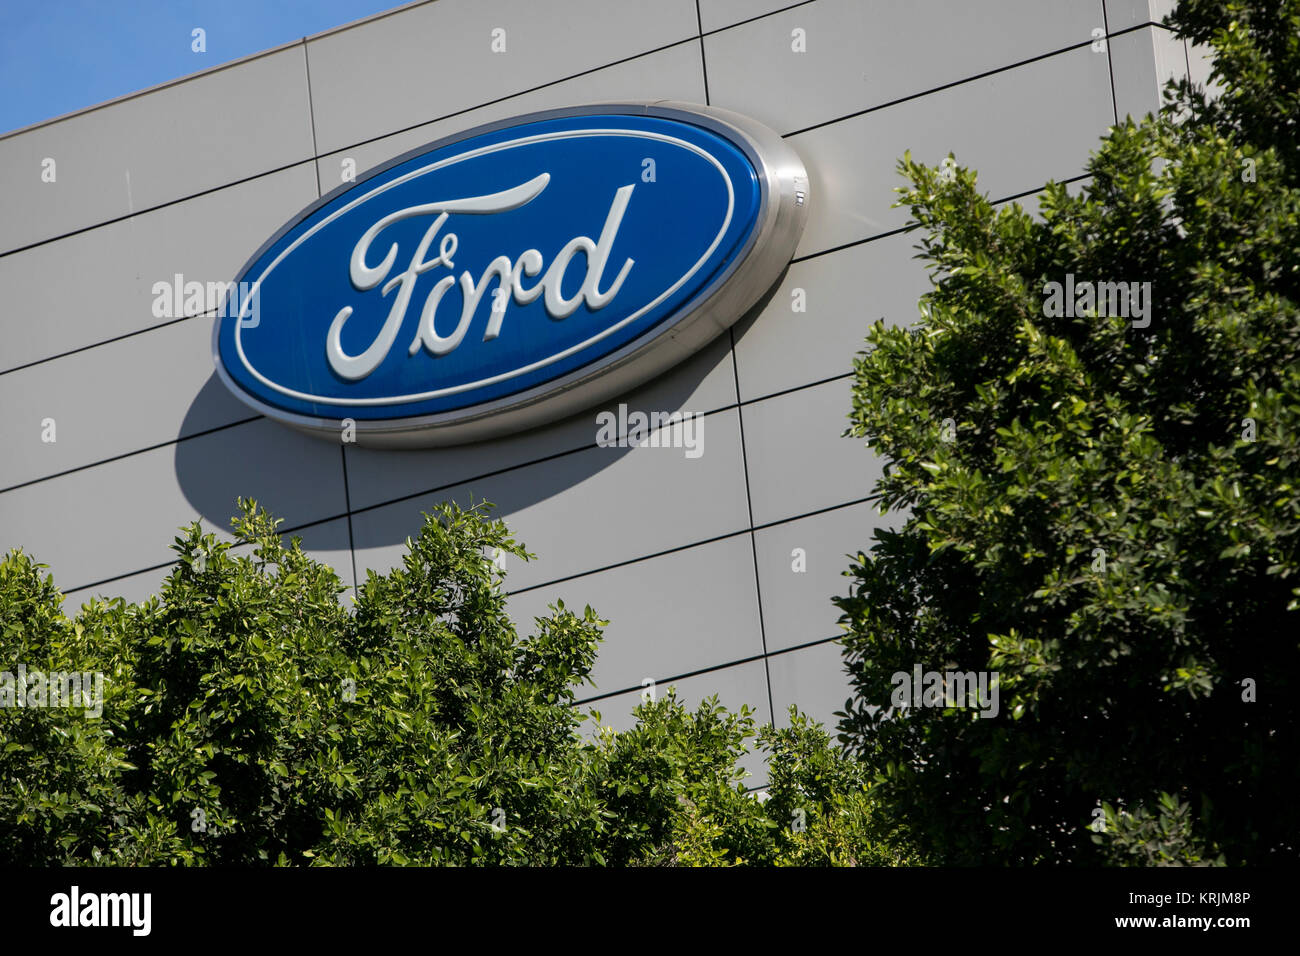 Ford motor company building stock photos ford motor for The ford motor company